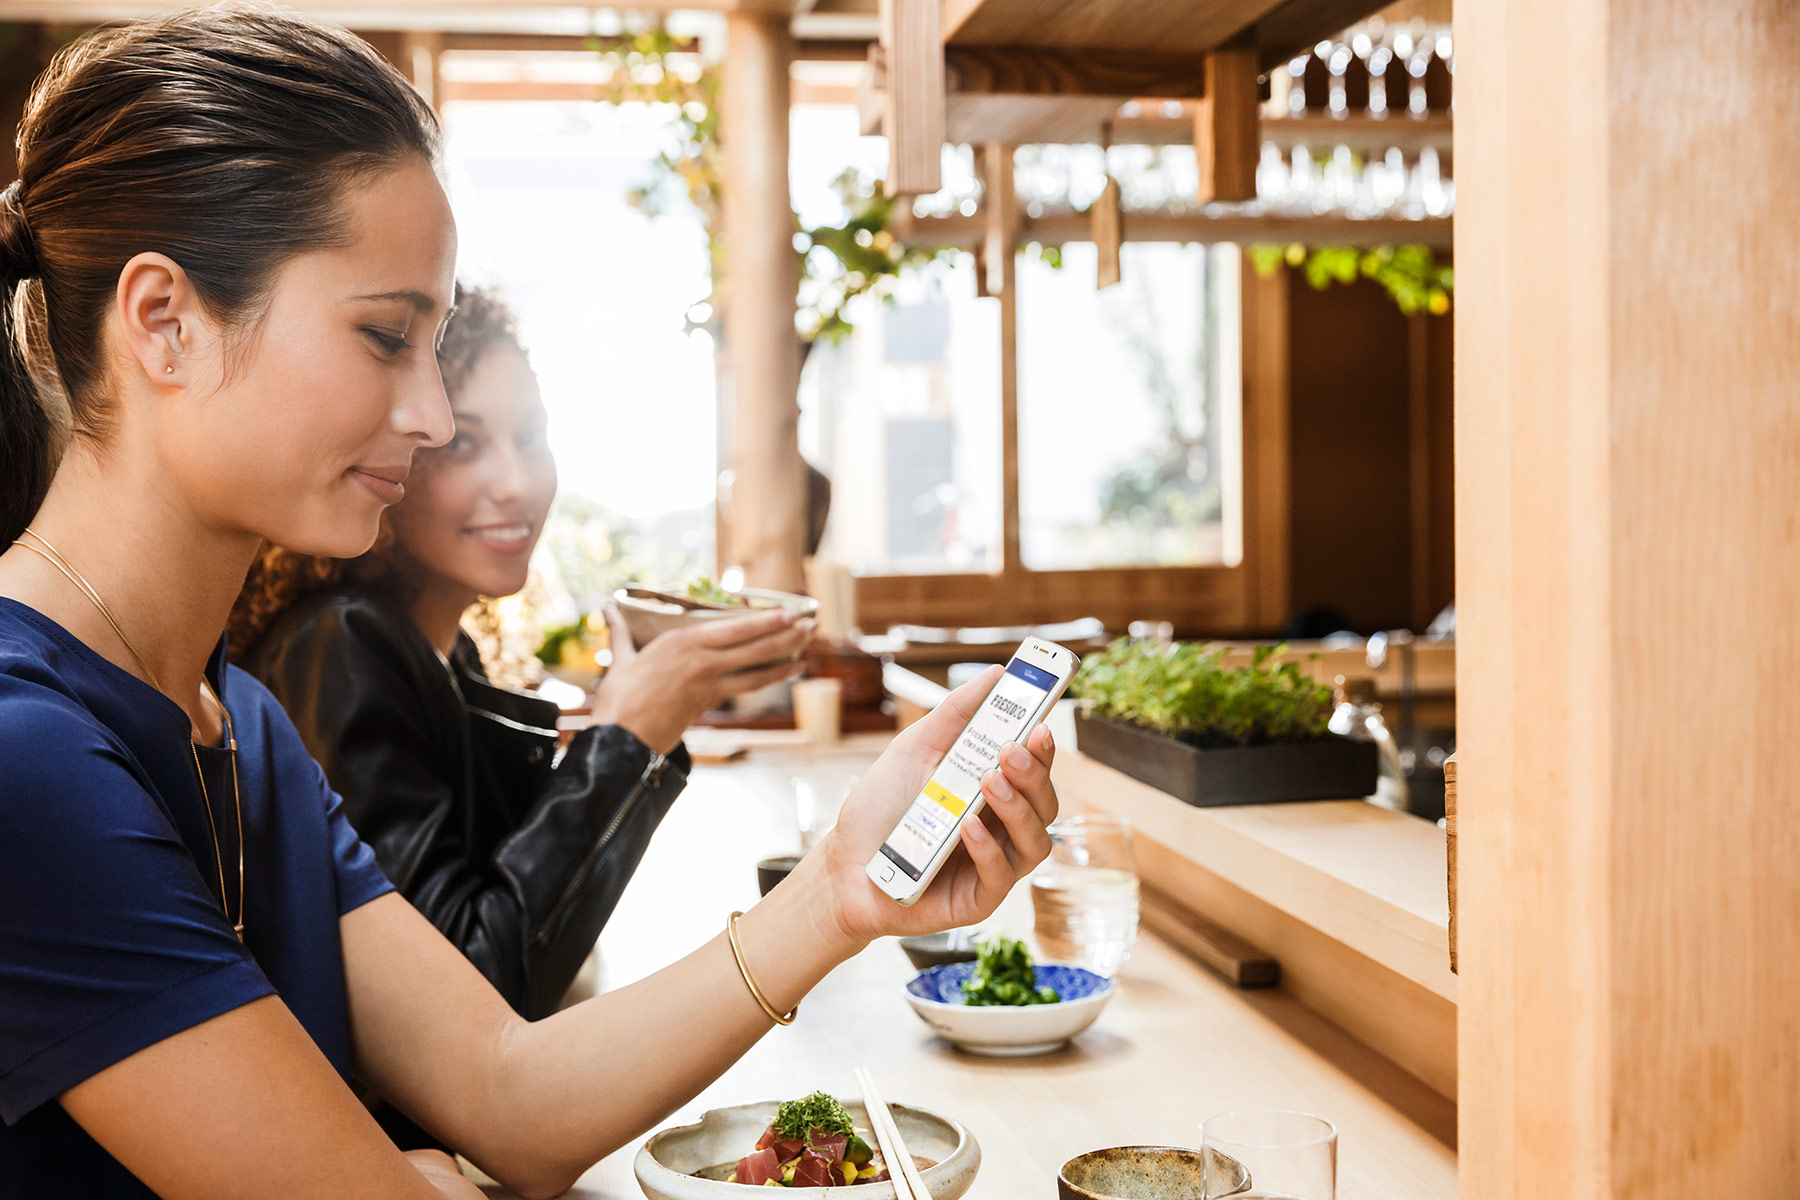 Women eating while holding a mobile phone